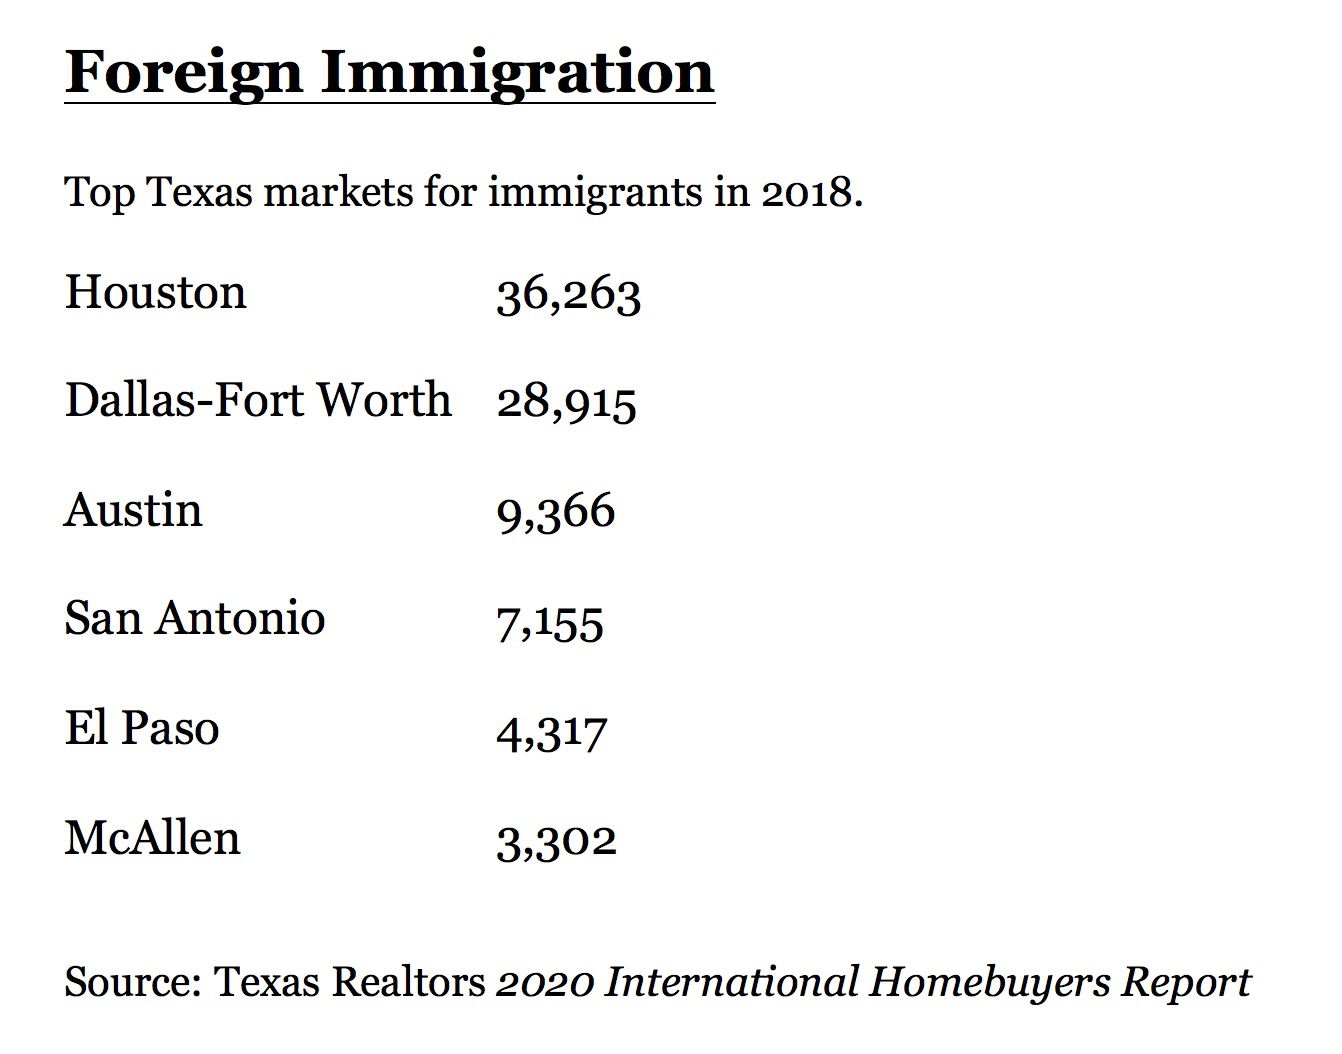 D-FW ranked ninth nationally for foreign immigration in 2018.